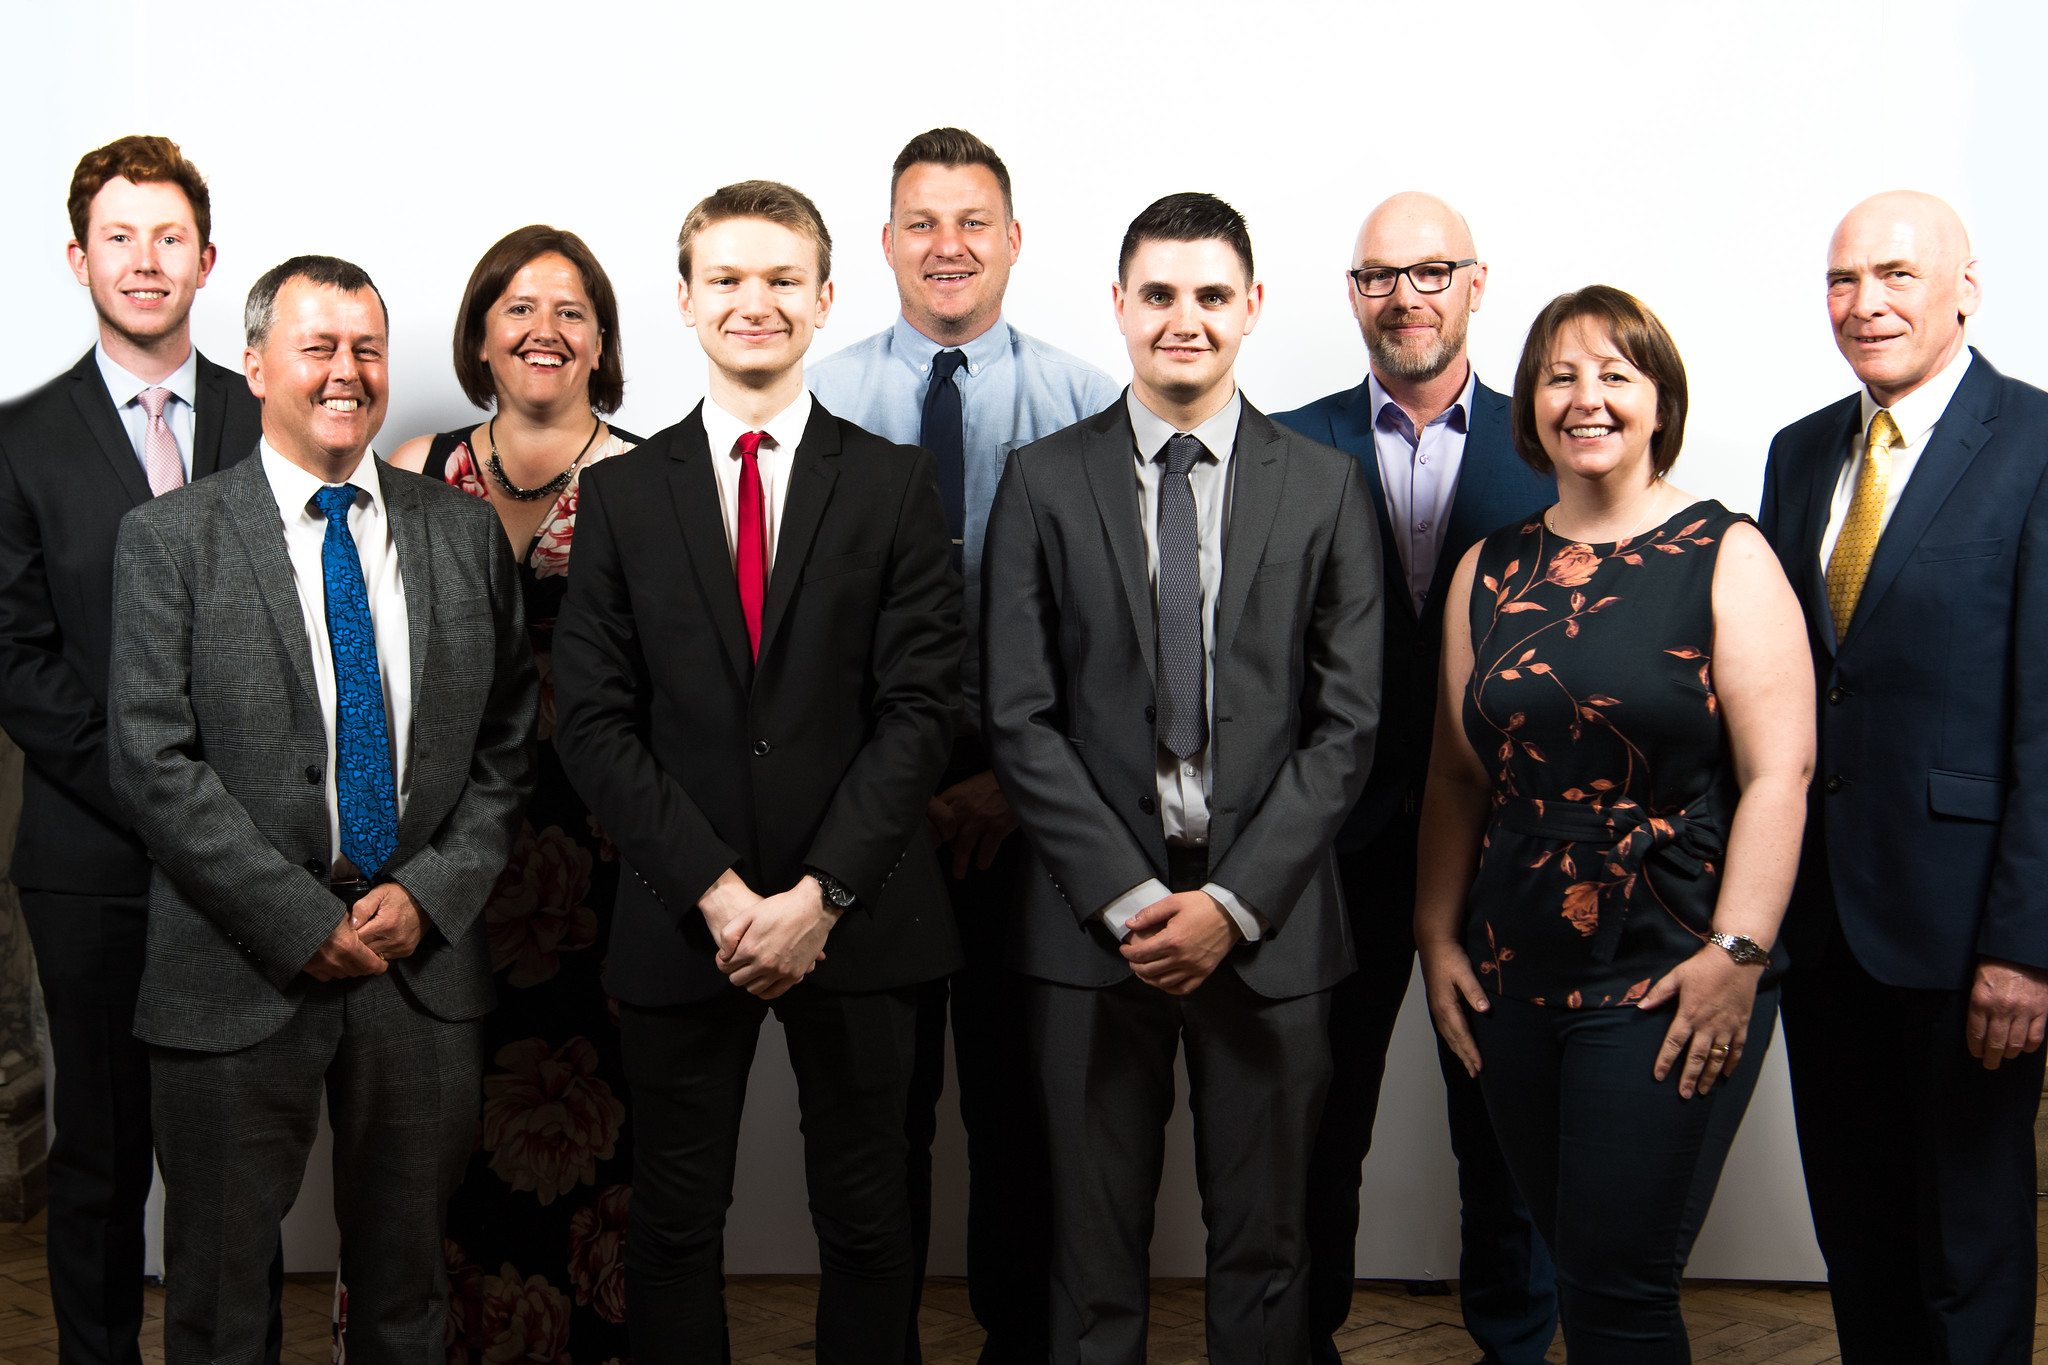 Chris & Connor pictured with LCB staff and representatives from Jacobs and A-one+